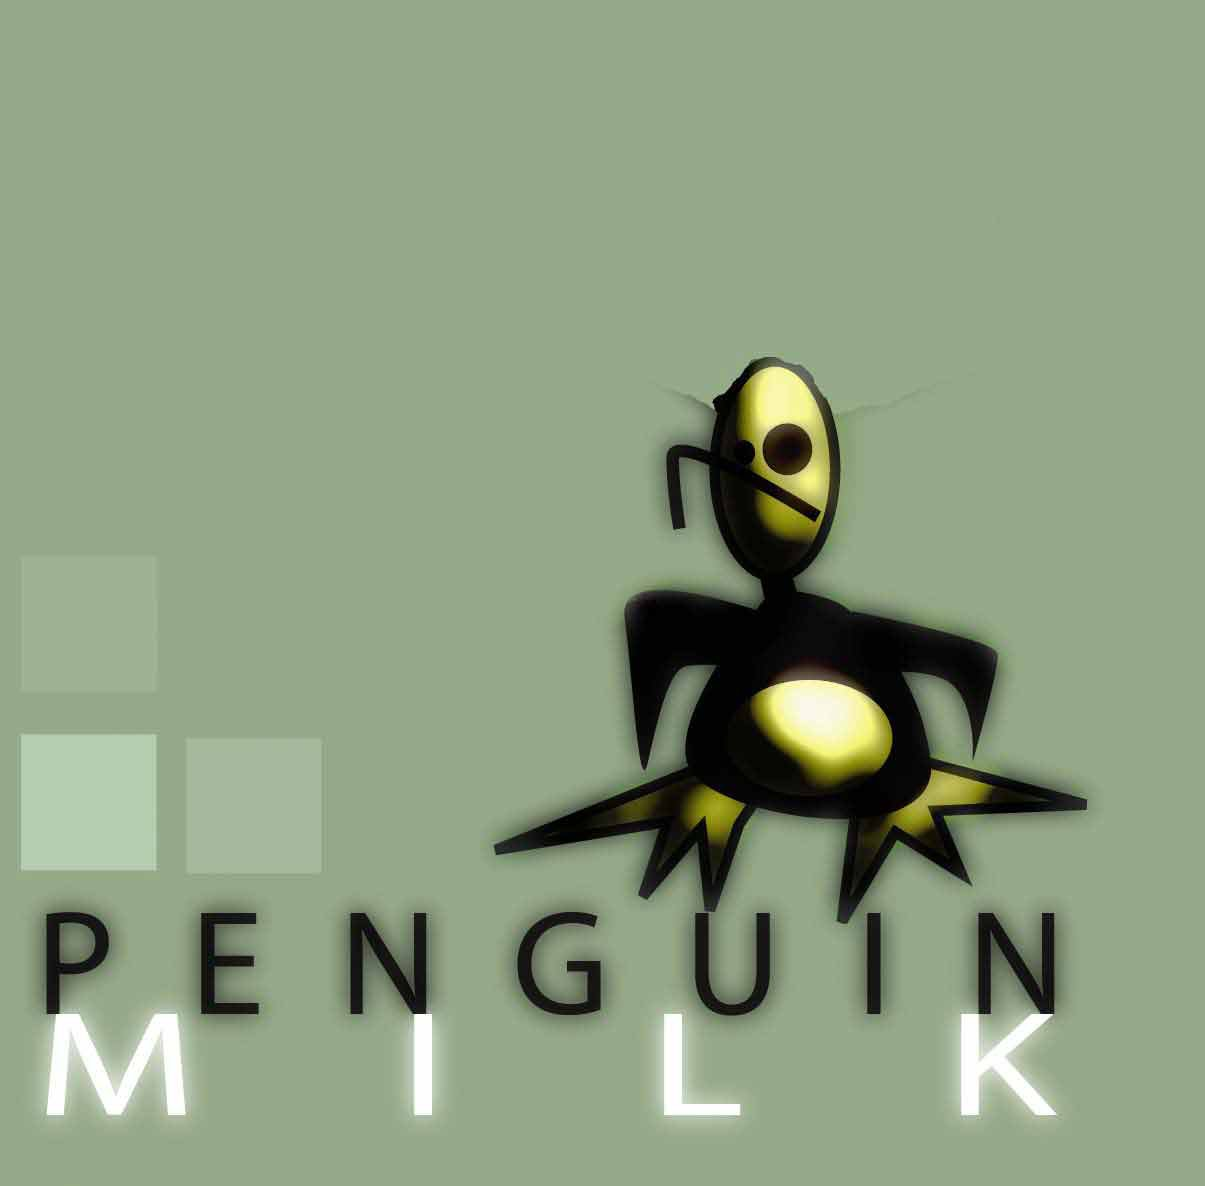 Penguin Milk Graphic final or close to it